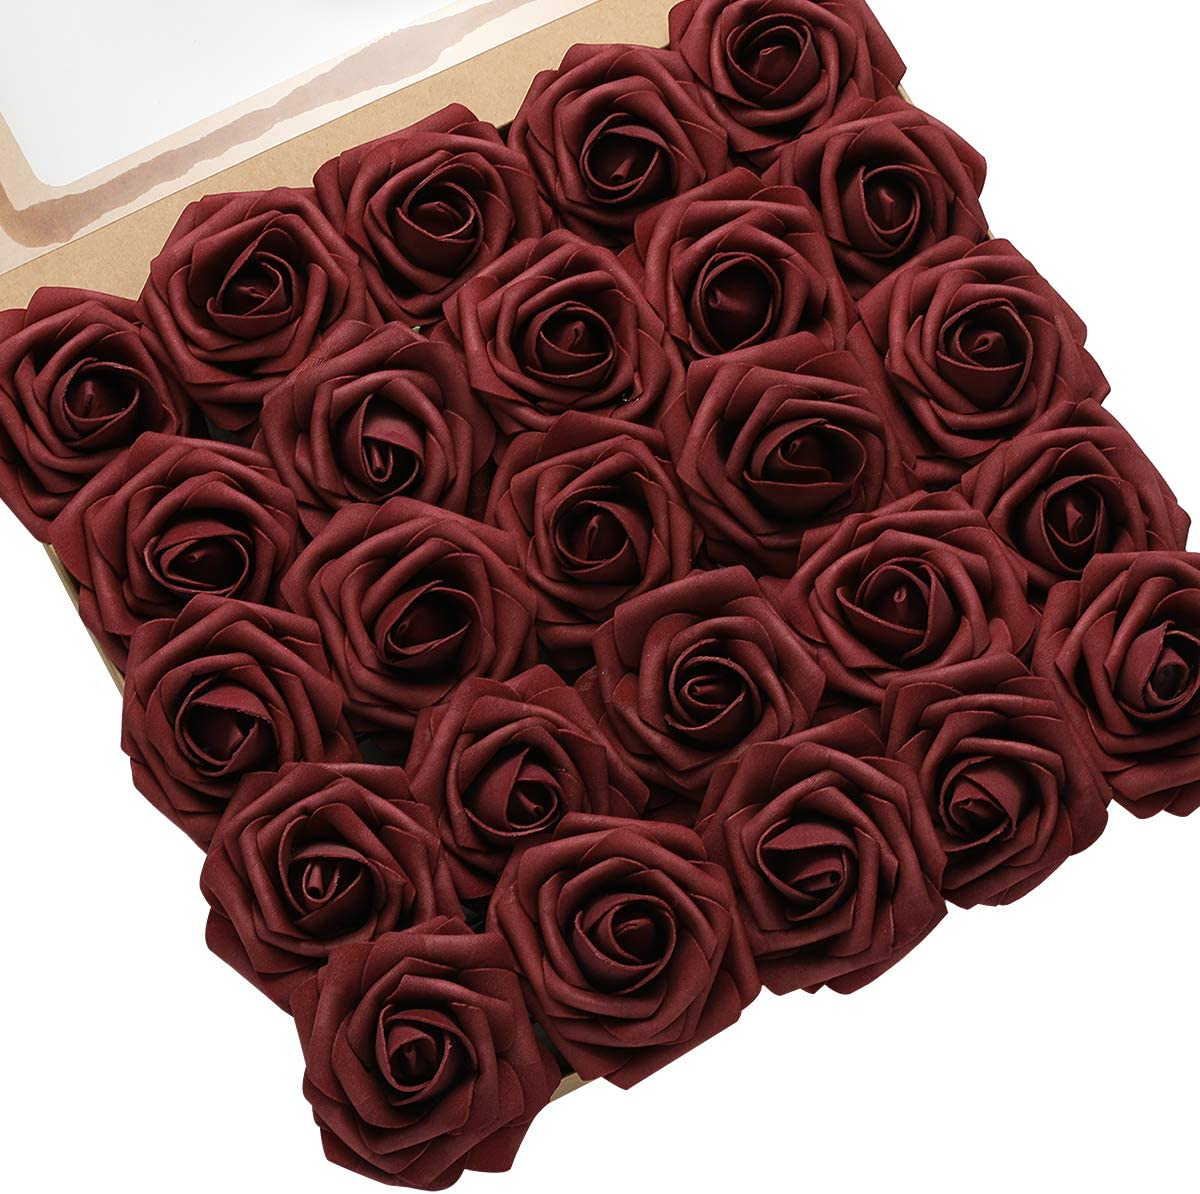 DerBlue 60pcs Artificial Roses Flowers Real Looking Fake Roses Artificial Foam Roses Decoration